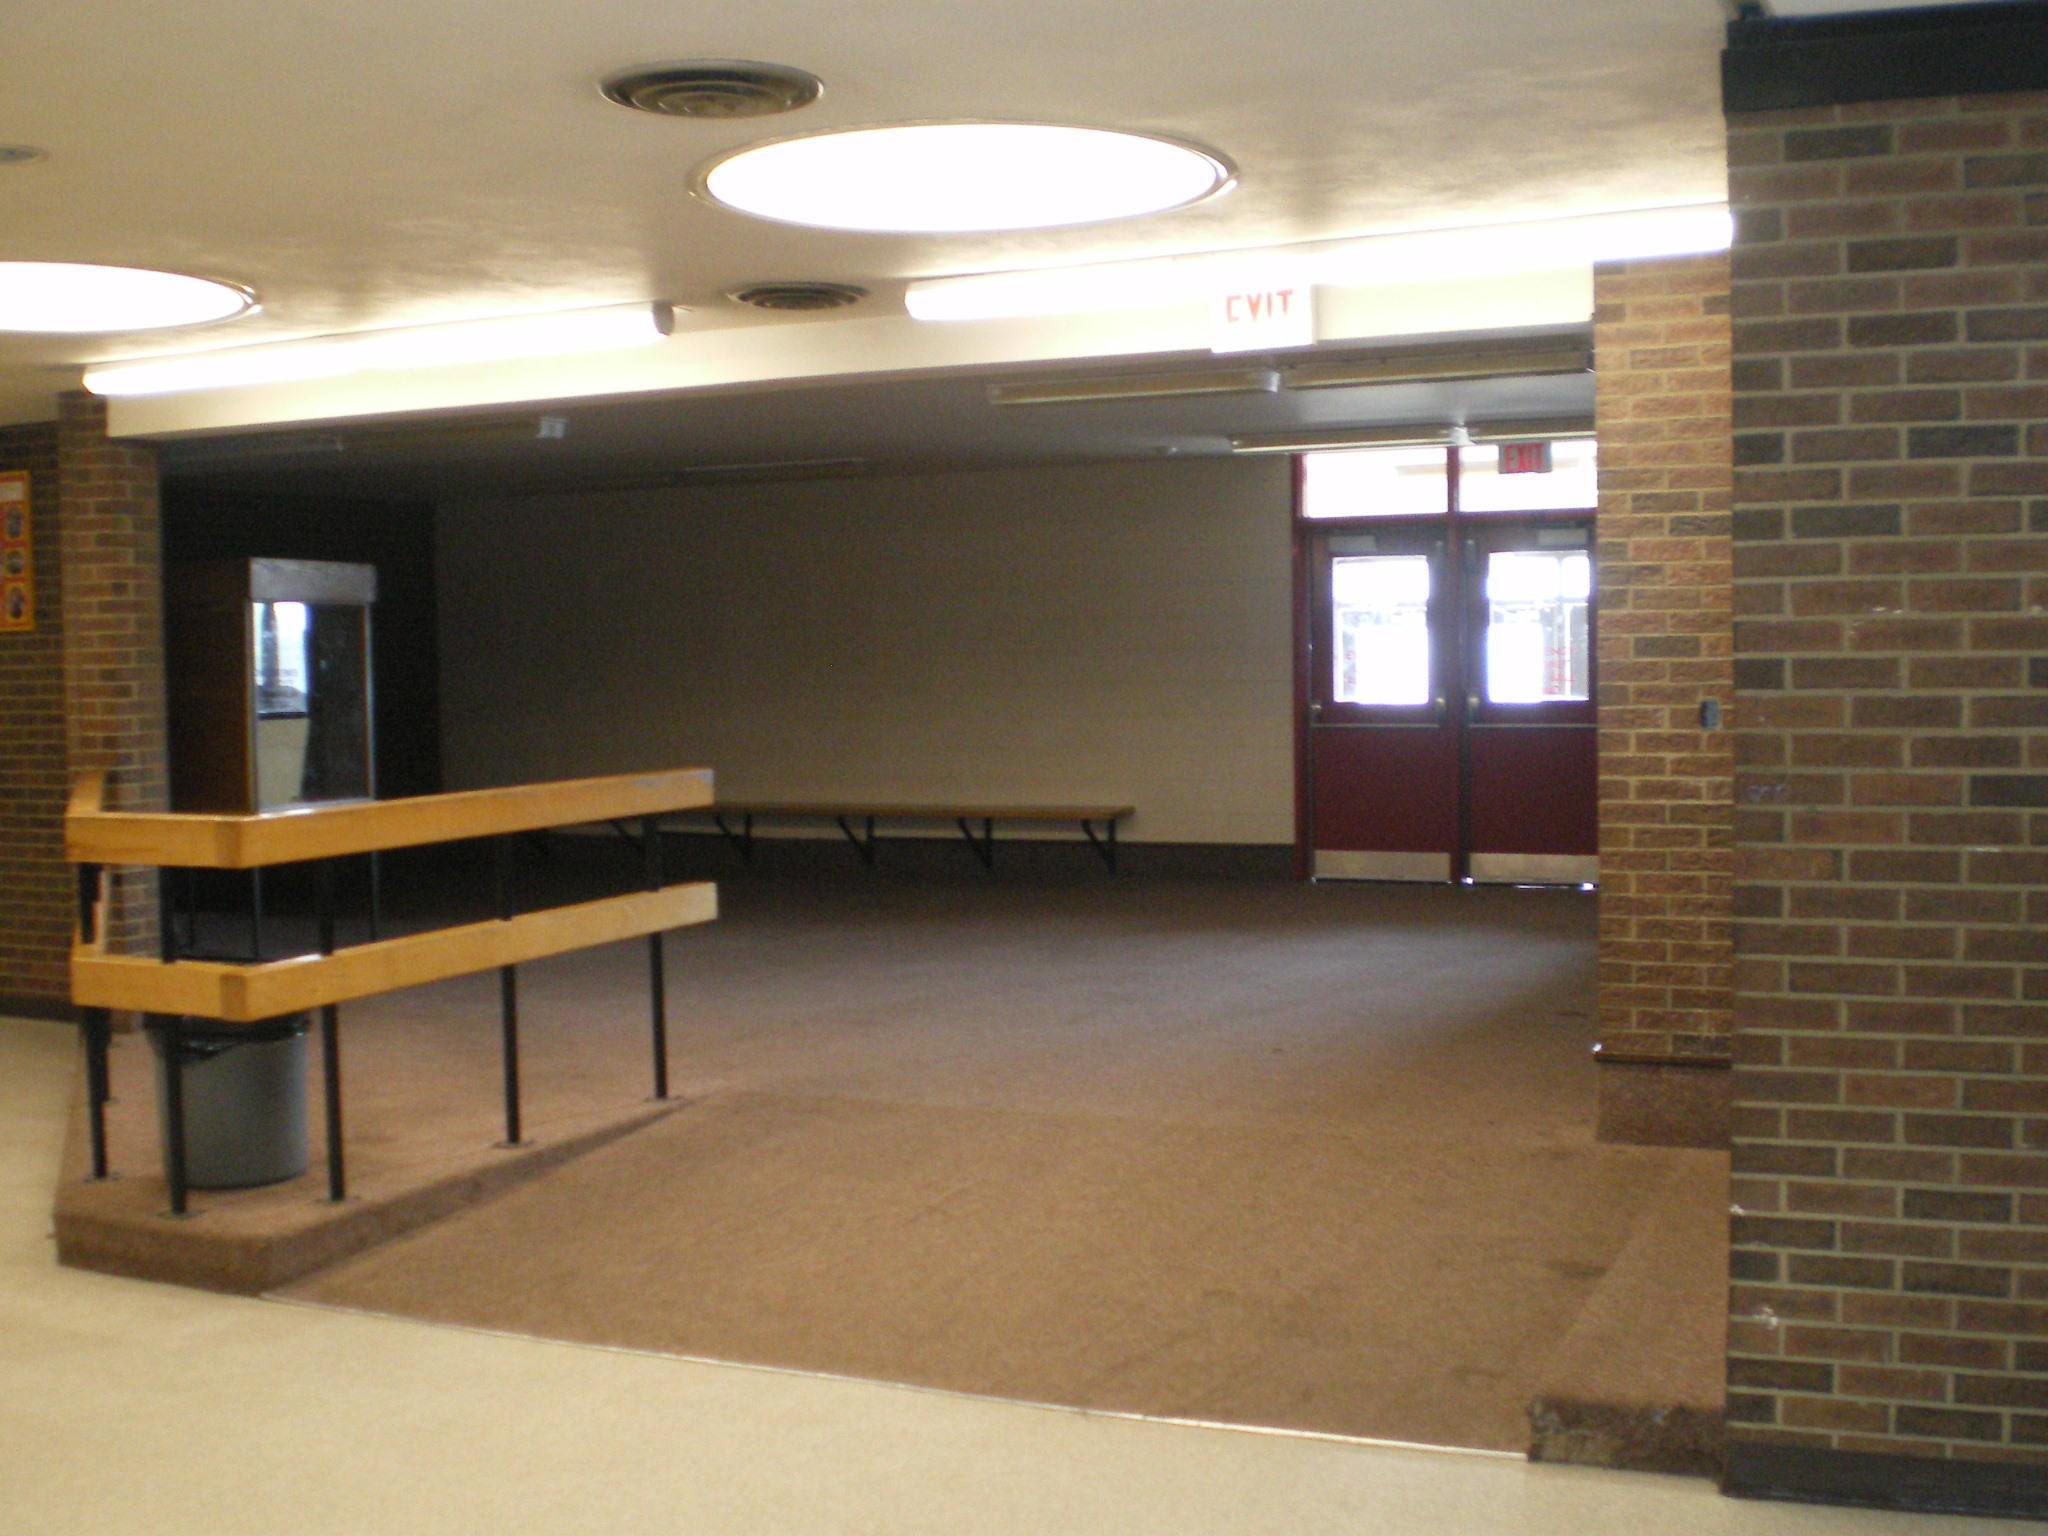 File:Saunders Secondary - Alcove.JPG - Wikimedia Commons